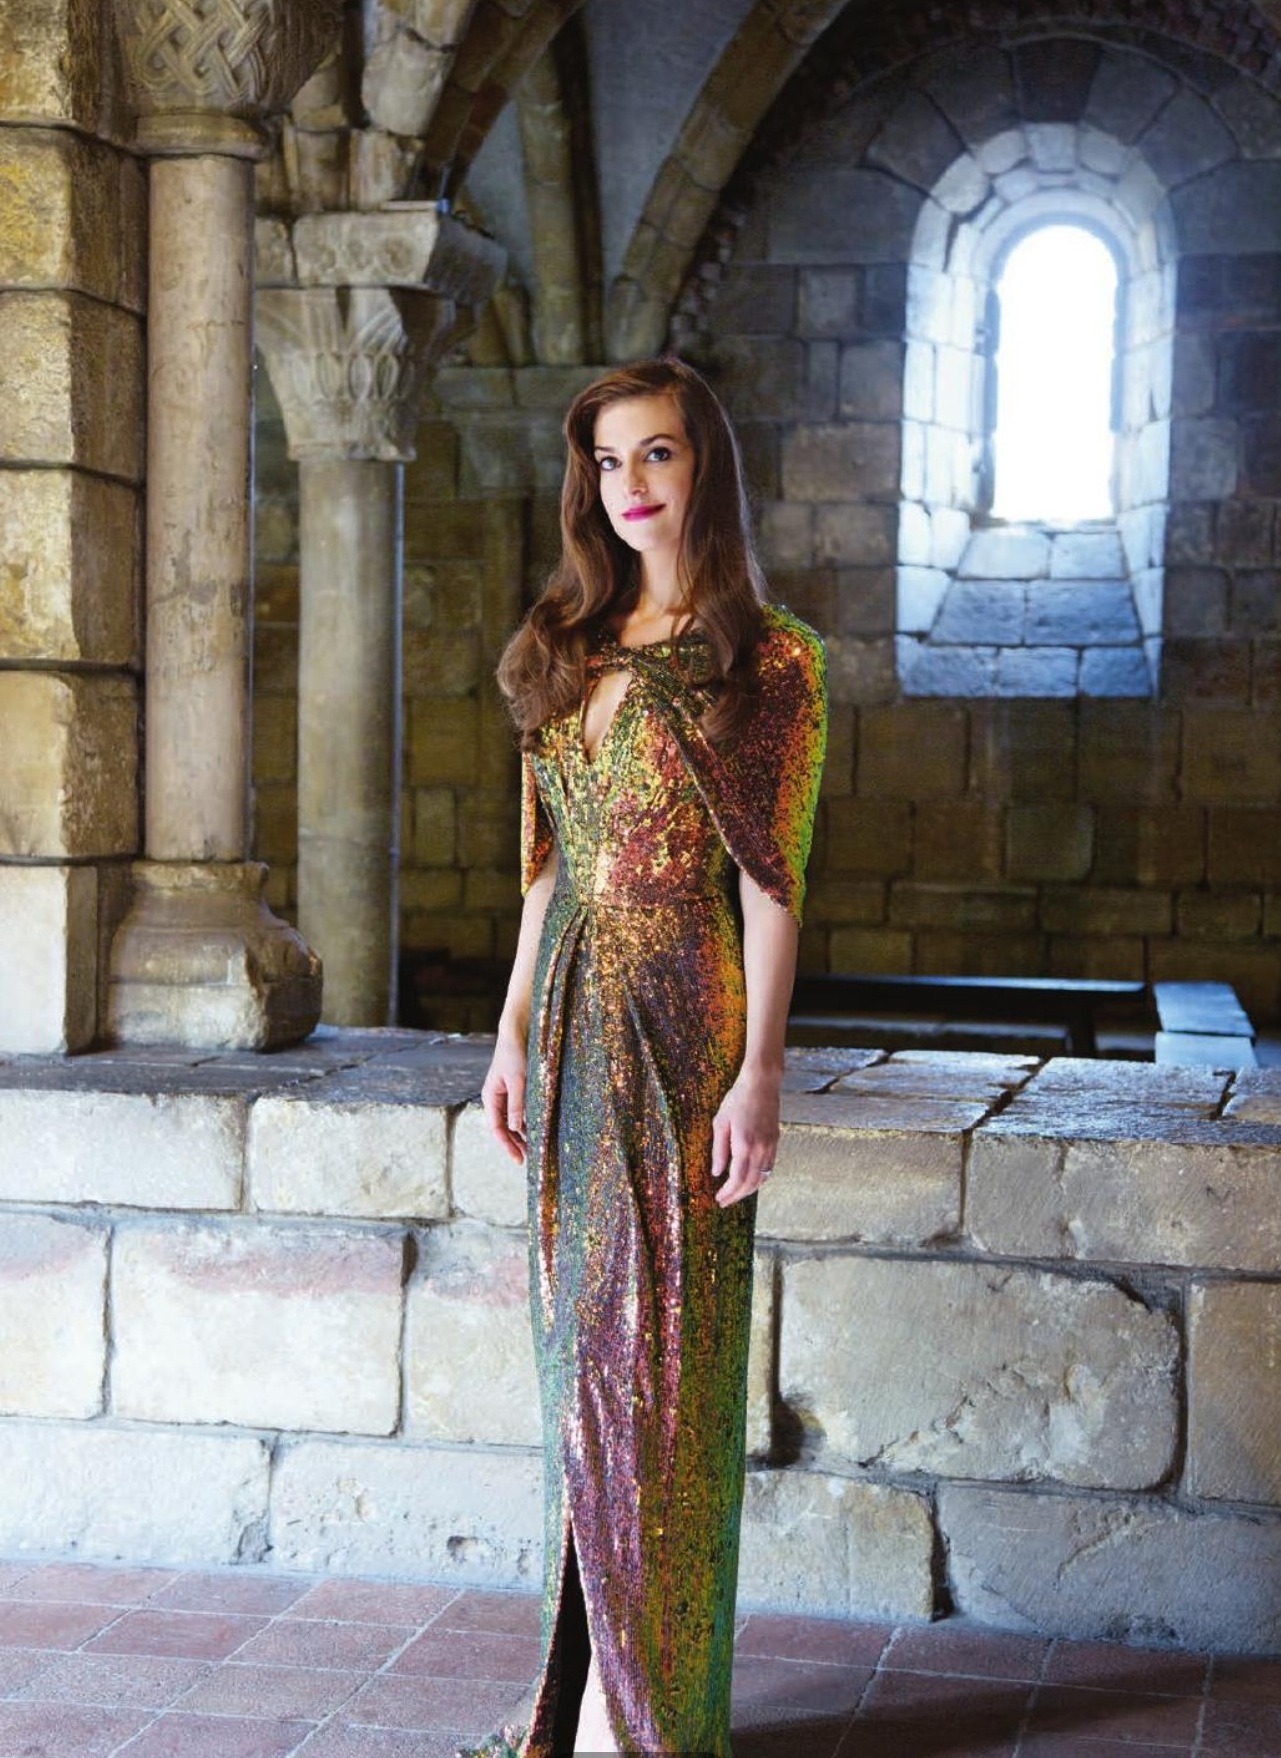 Lorry Newhouse gold sequined dress with cape,  David Webb nail ring and Rupert Sanderson elba suede pumps.